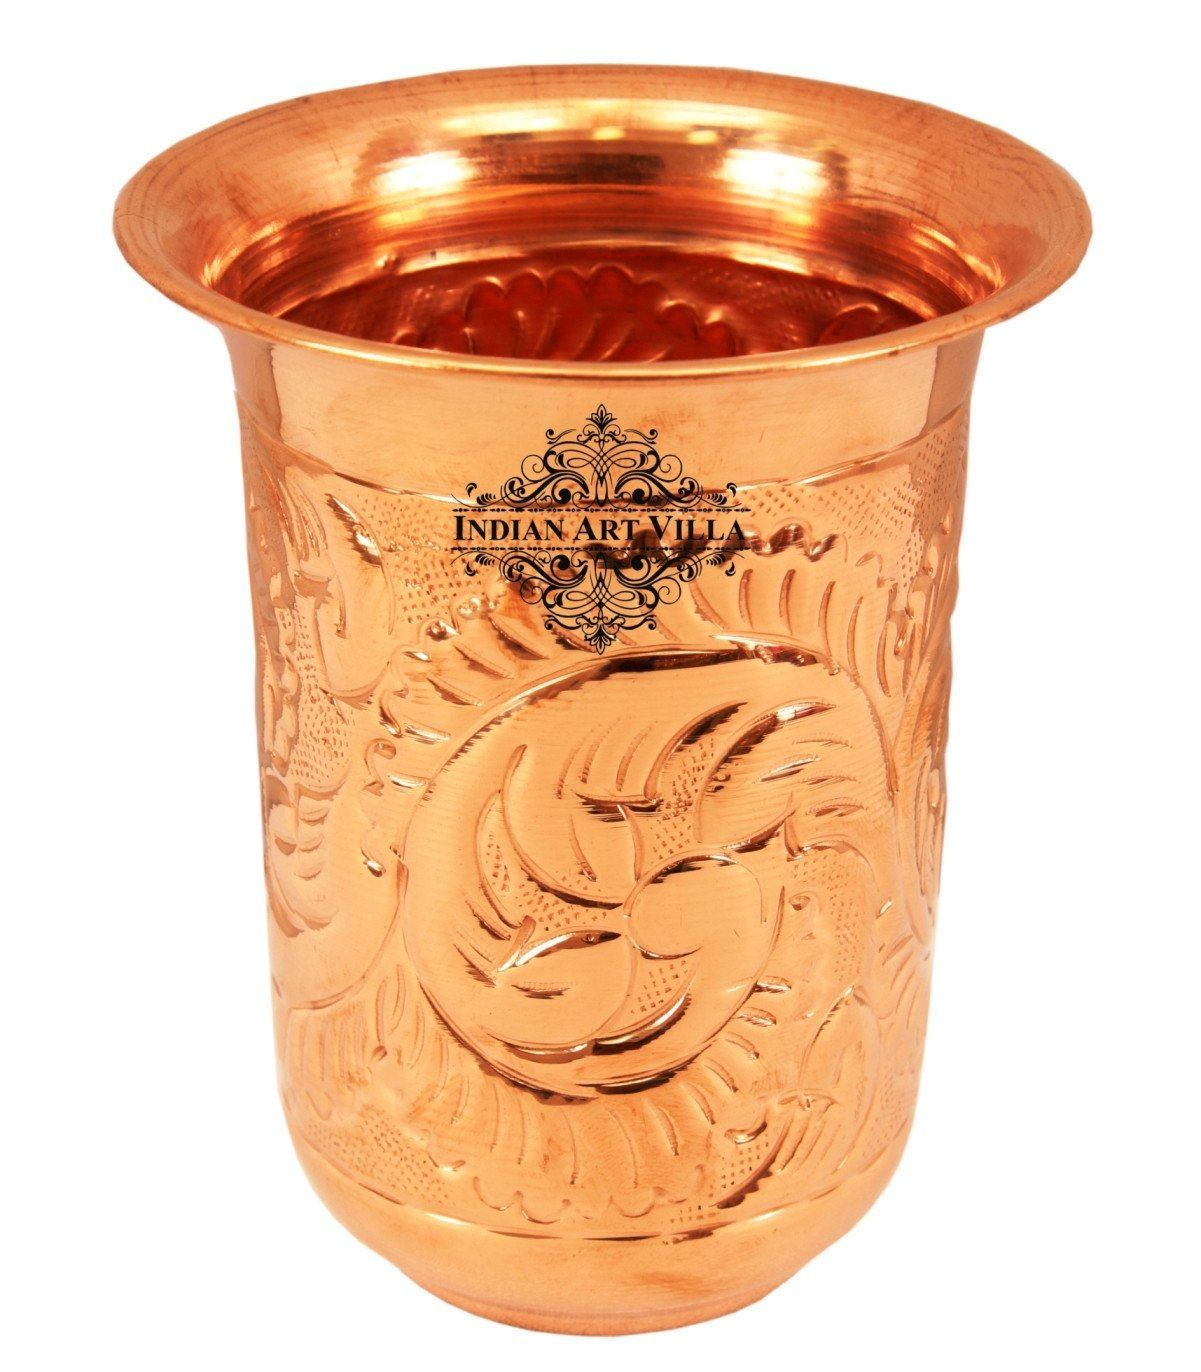 IndianArtVilla Copper Handmade Designer Glass Tumbler 11 Oz